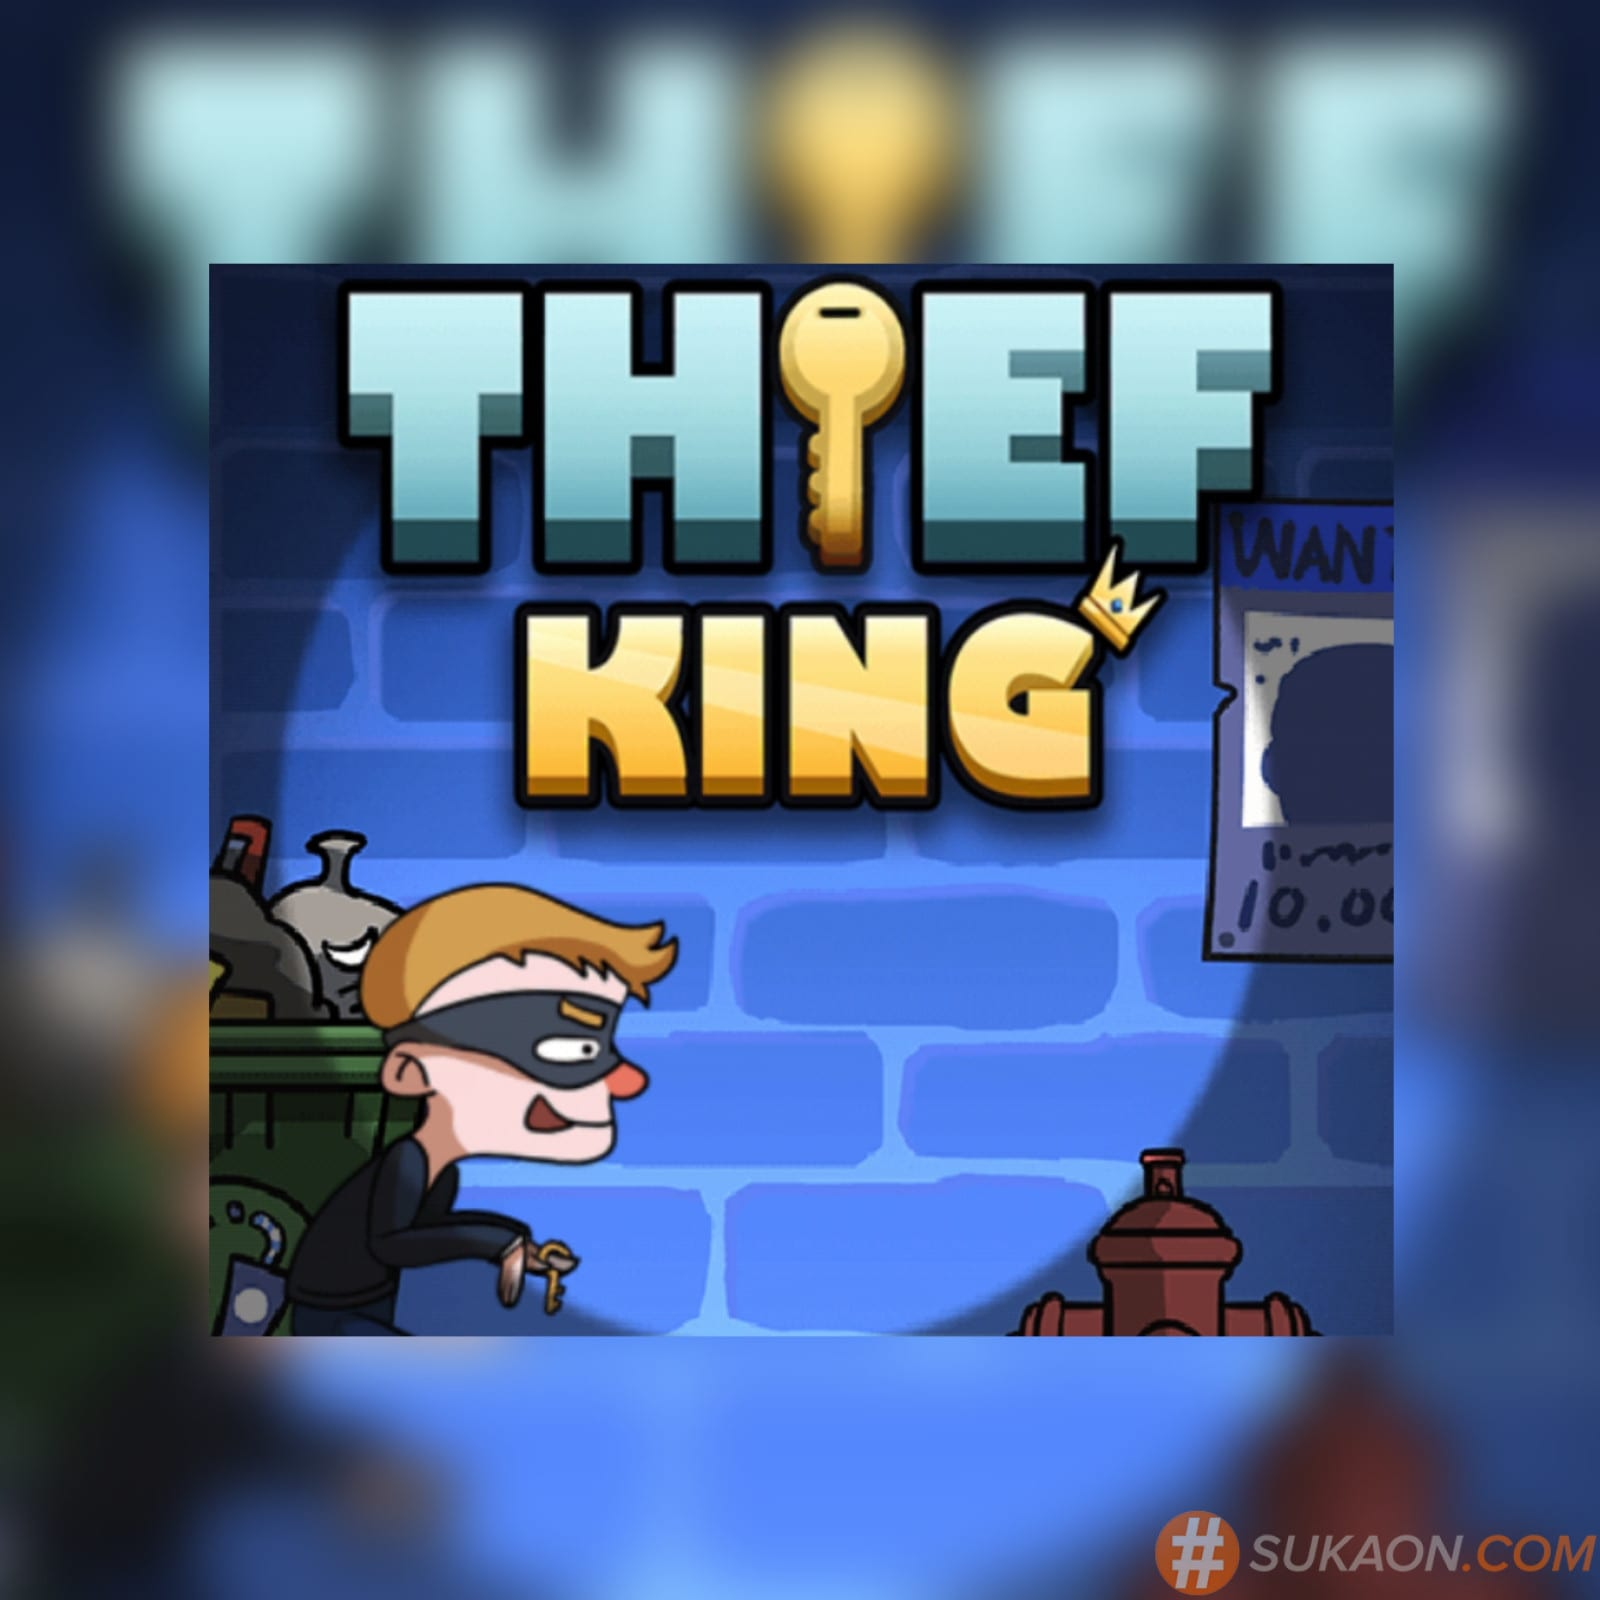 thief king